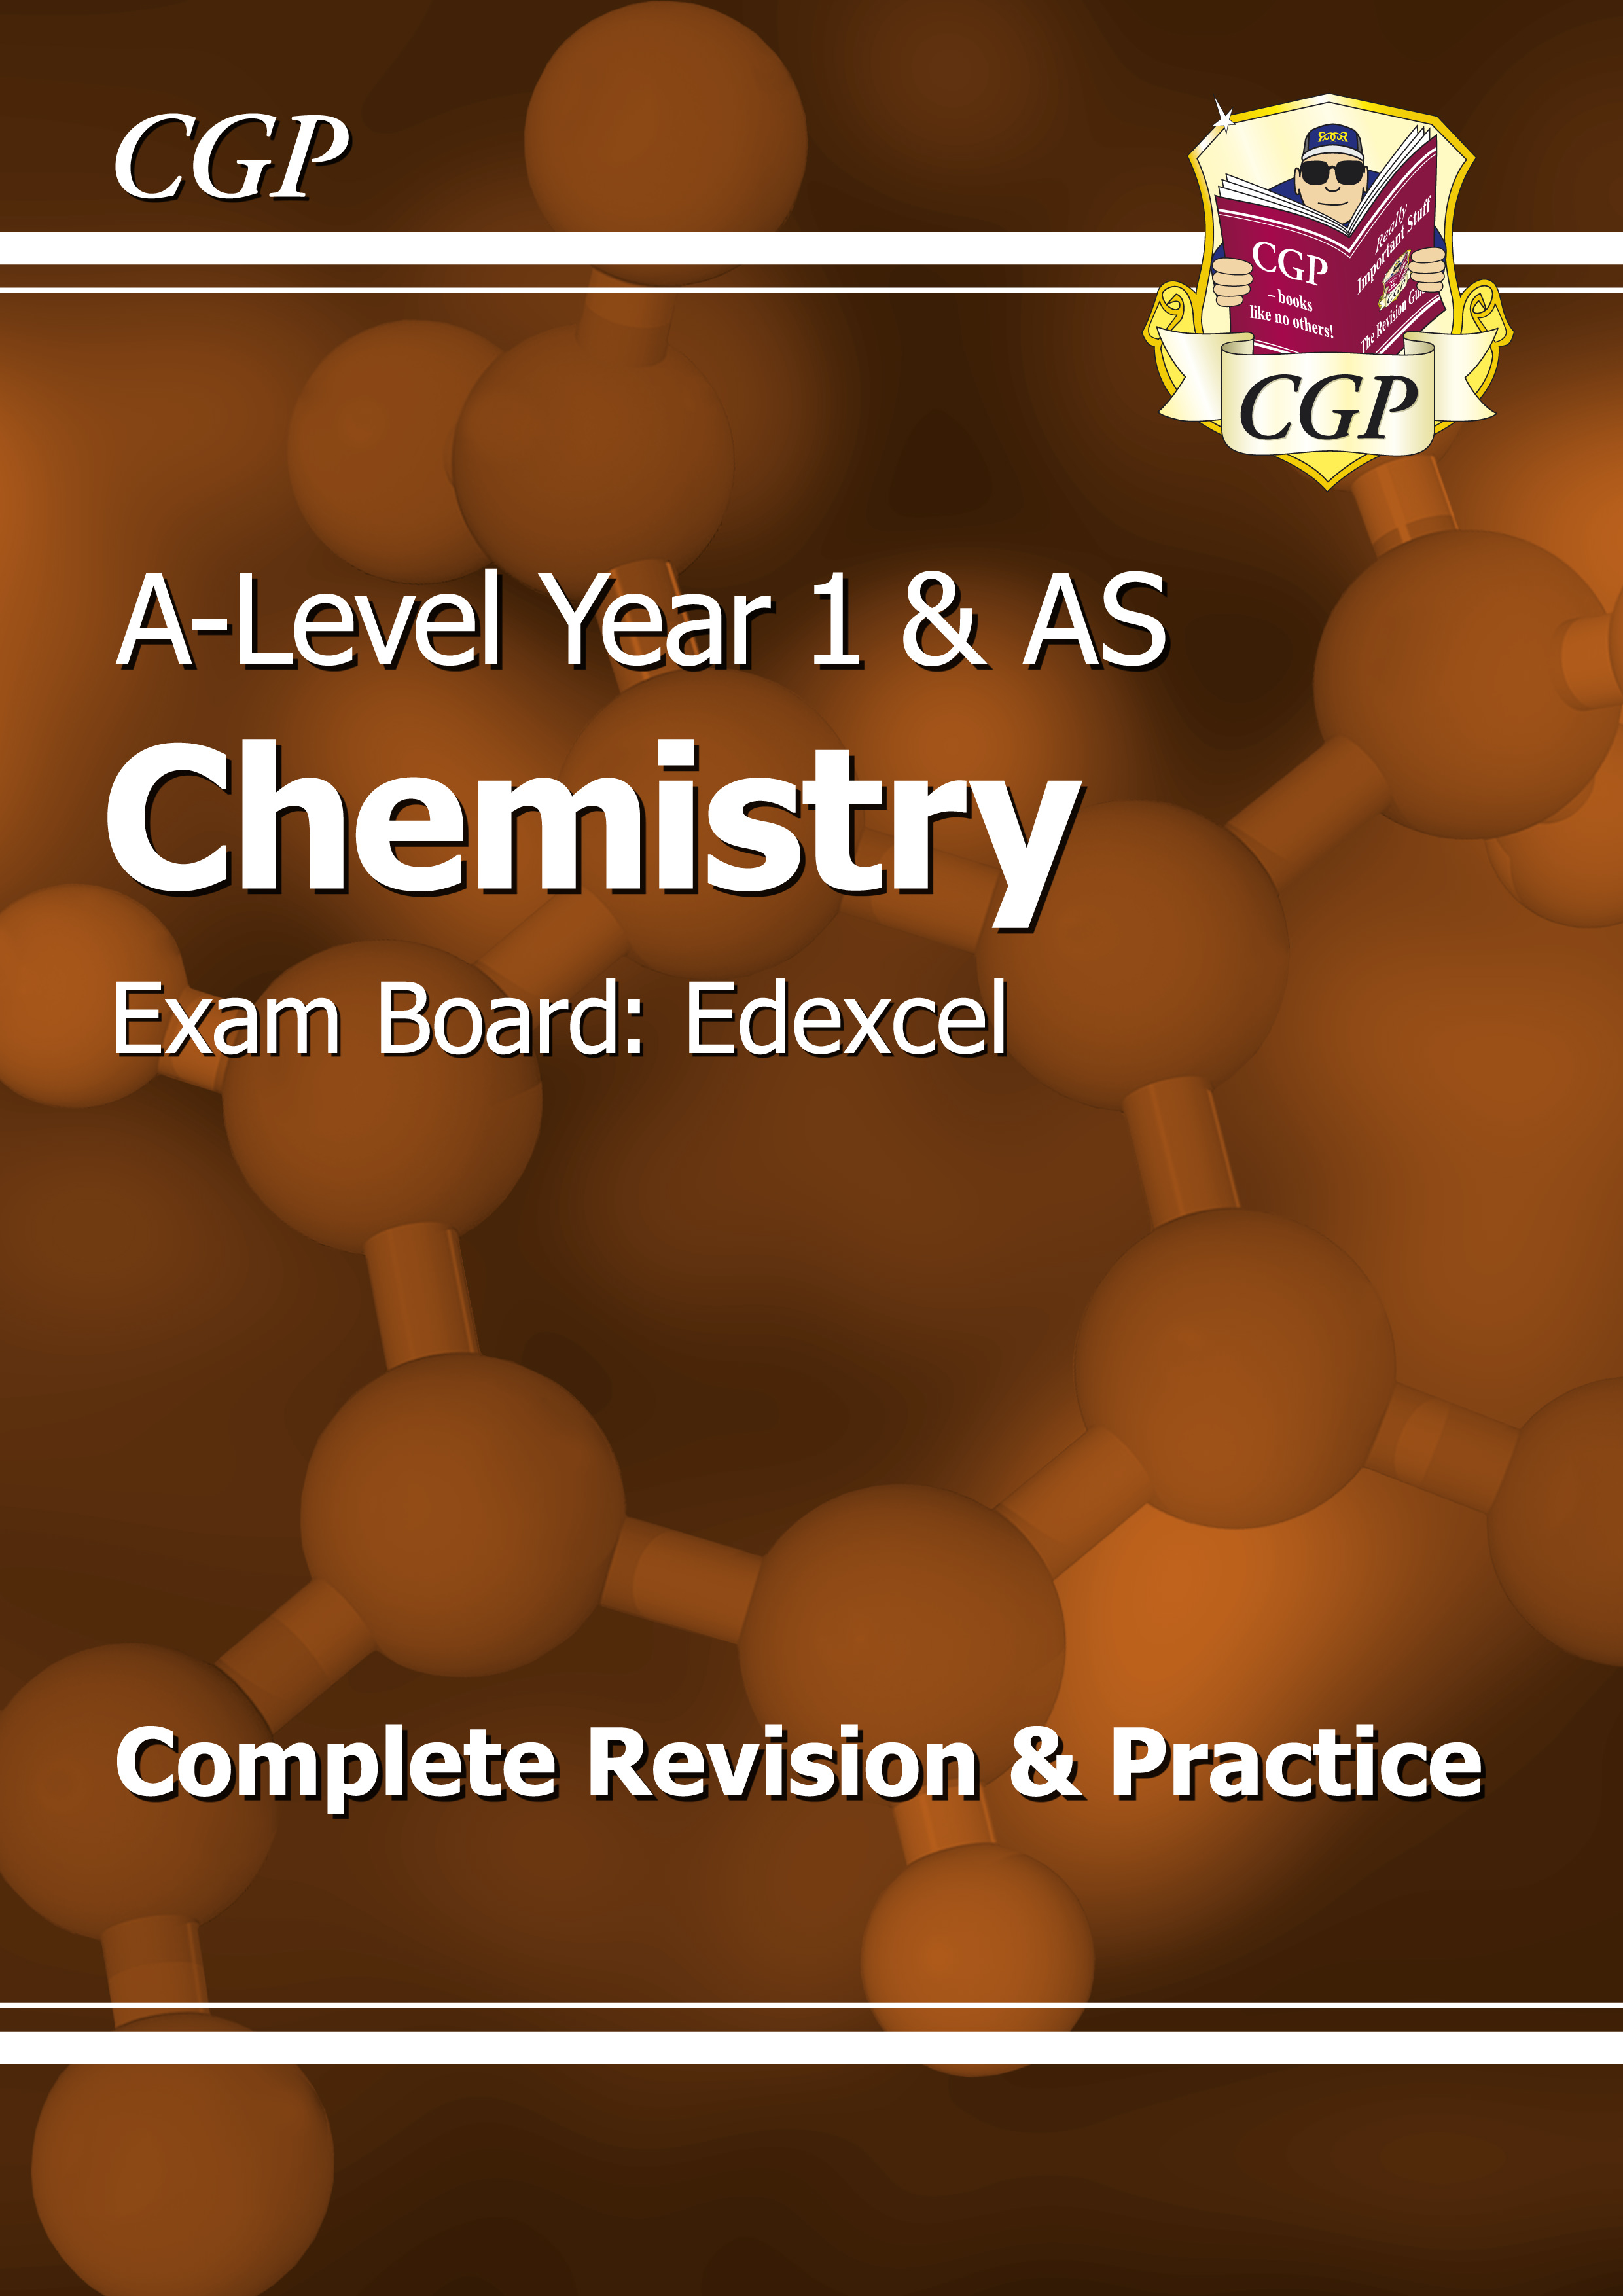 CER53DK - A-Level Chemistry: Edexcel Year 1 & AS Complete Revision & Practice